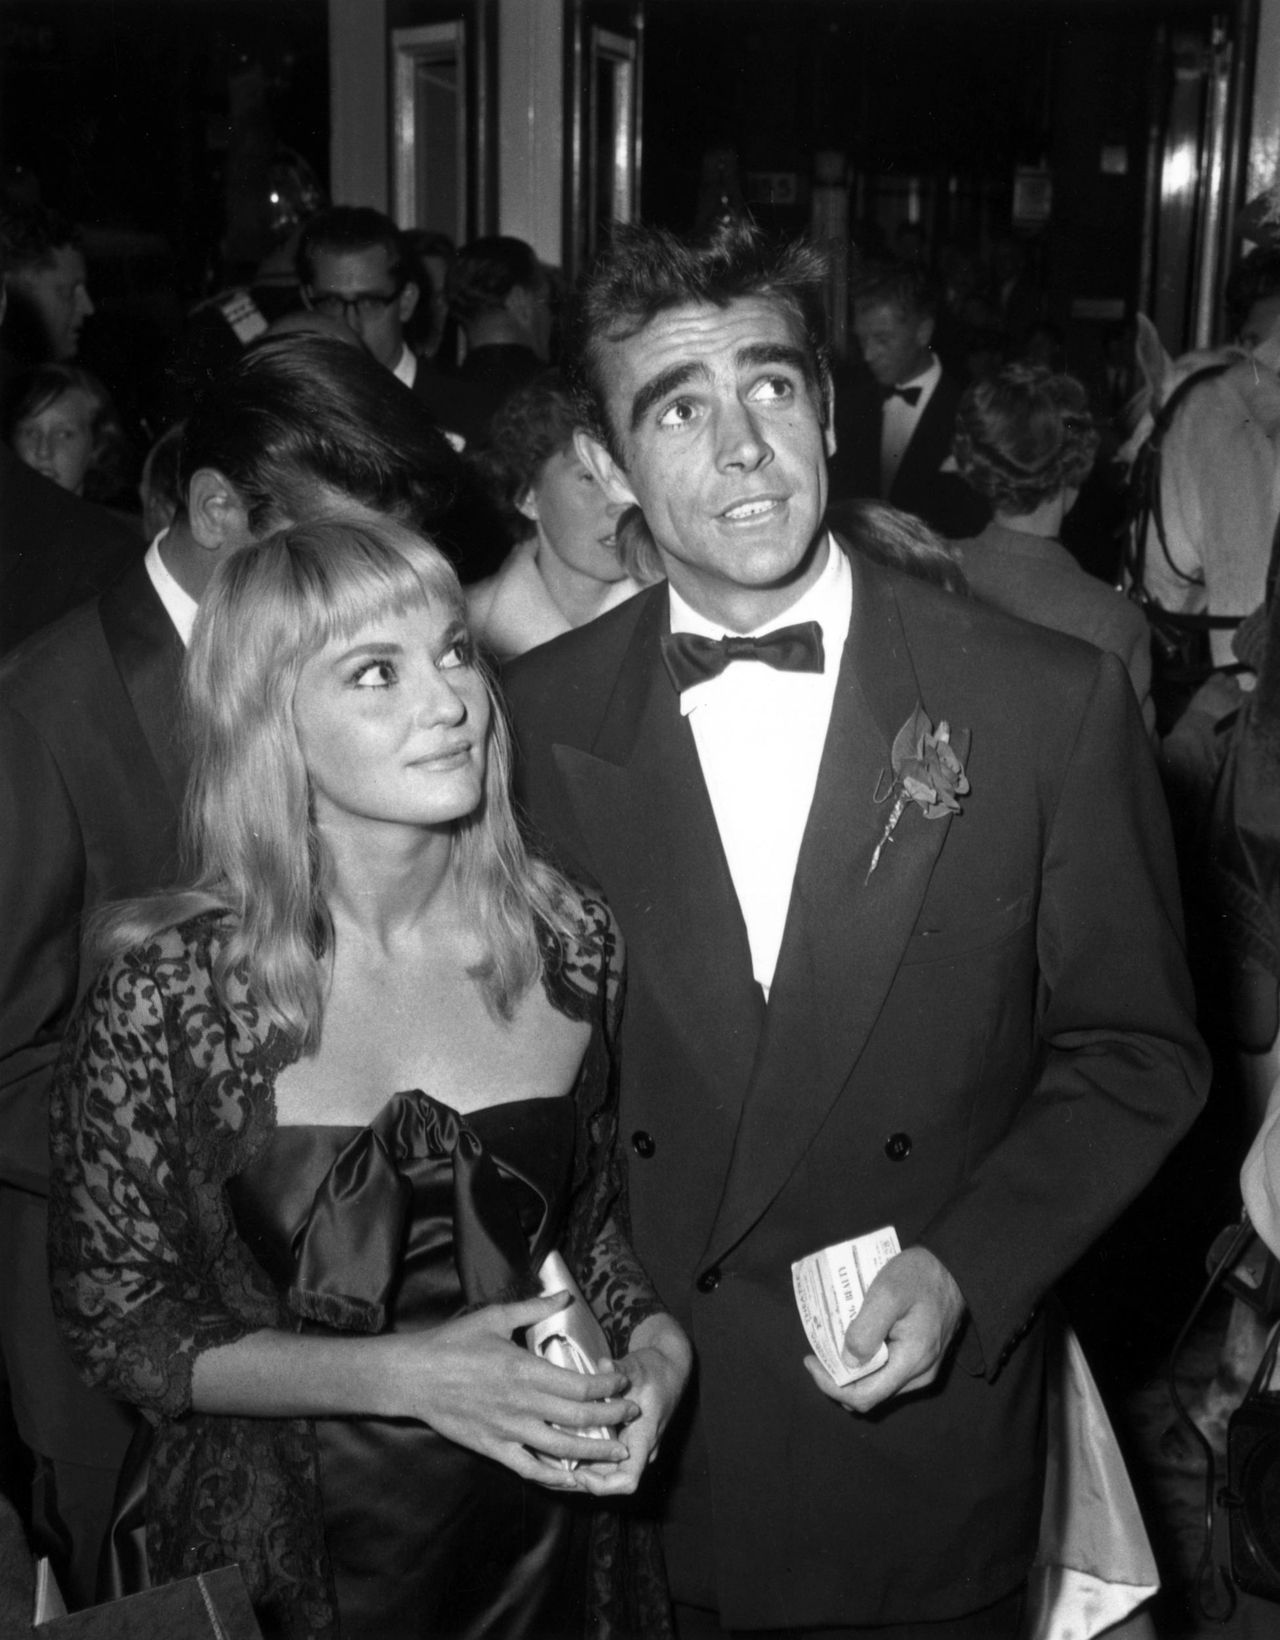 Sean Connery - Obituary for the late great original James Bond star!